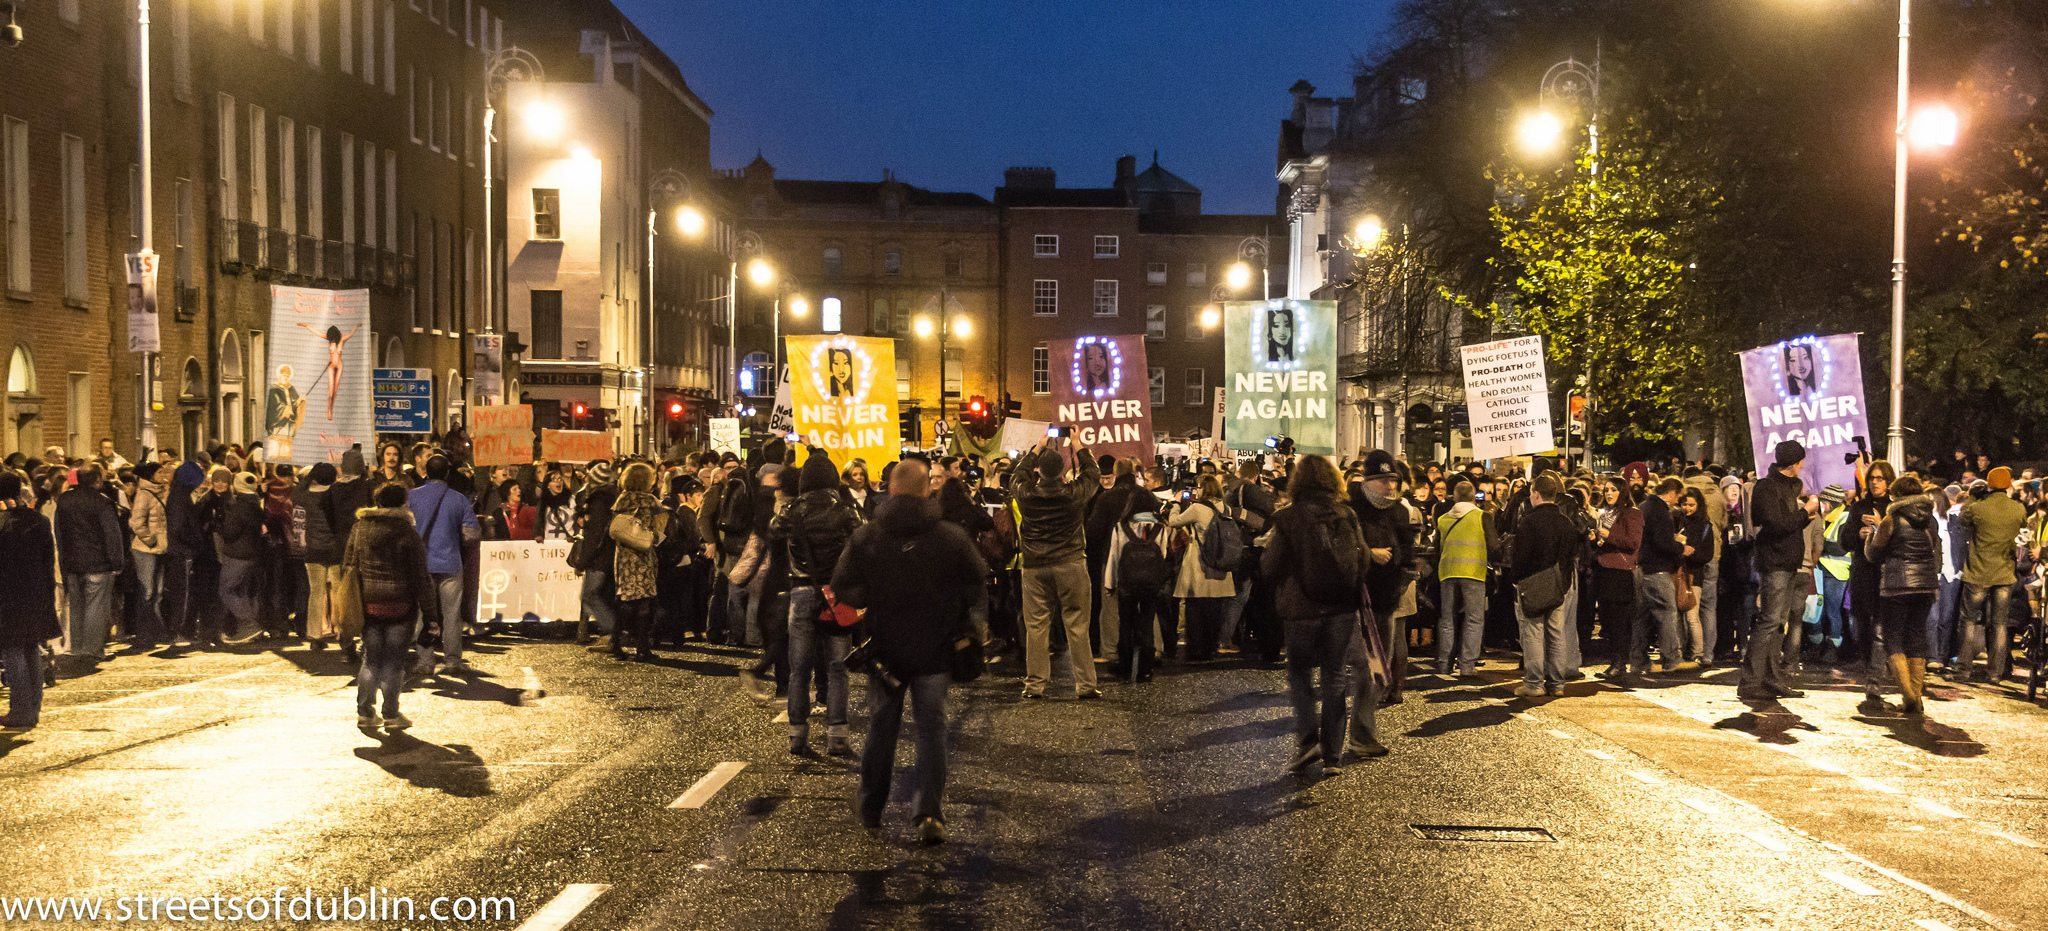 Repeal the 8th: Irish Libertarians and the Abortion Debate